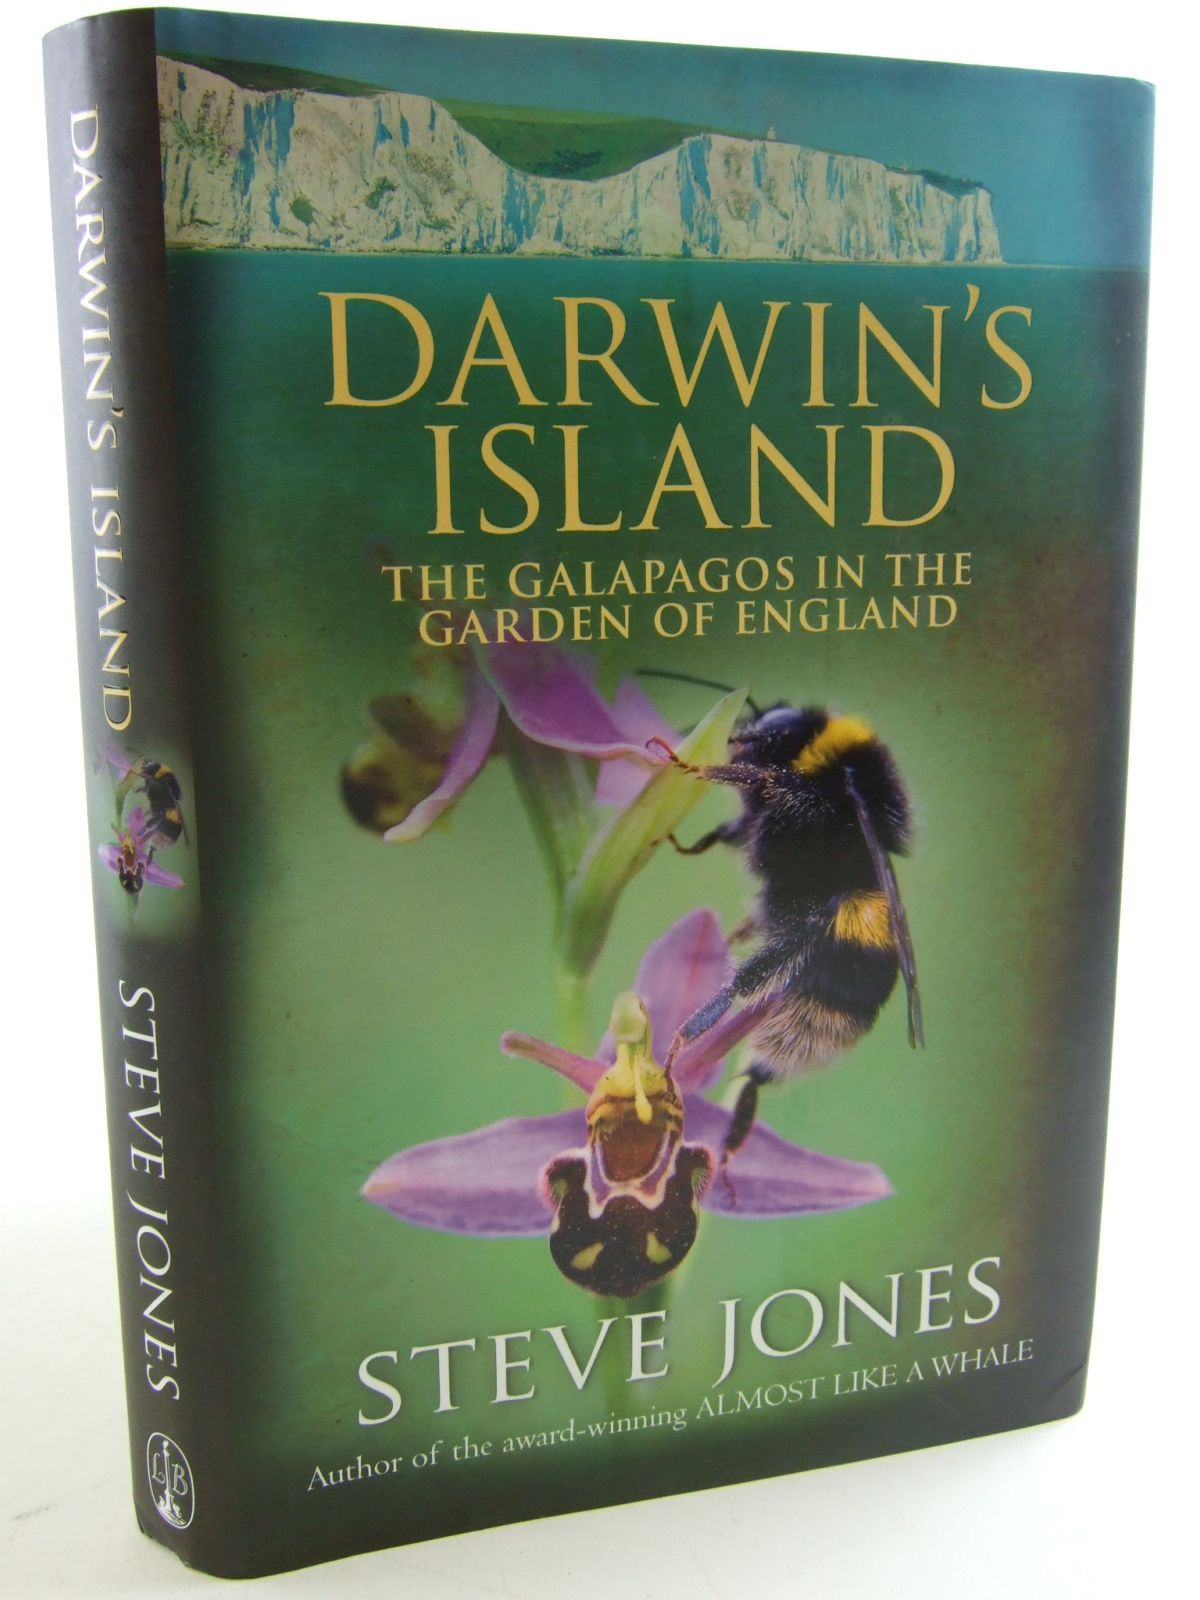 Photo of DARWIN'S ISLAND THE GALAPAGOS IN THE GARDEN OF ENGLAND written by Jones, Steve published by Little, Brown (STOCK CODE: 1805258)  for sale by Stella & Rose's Books